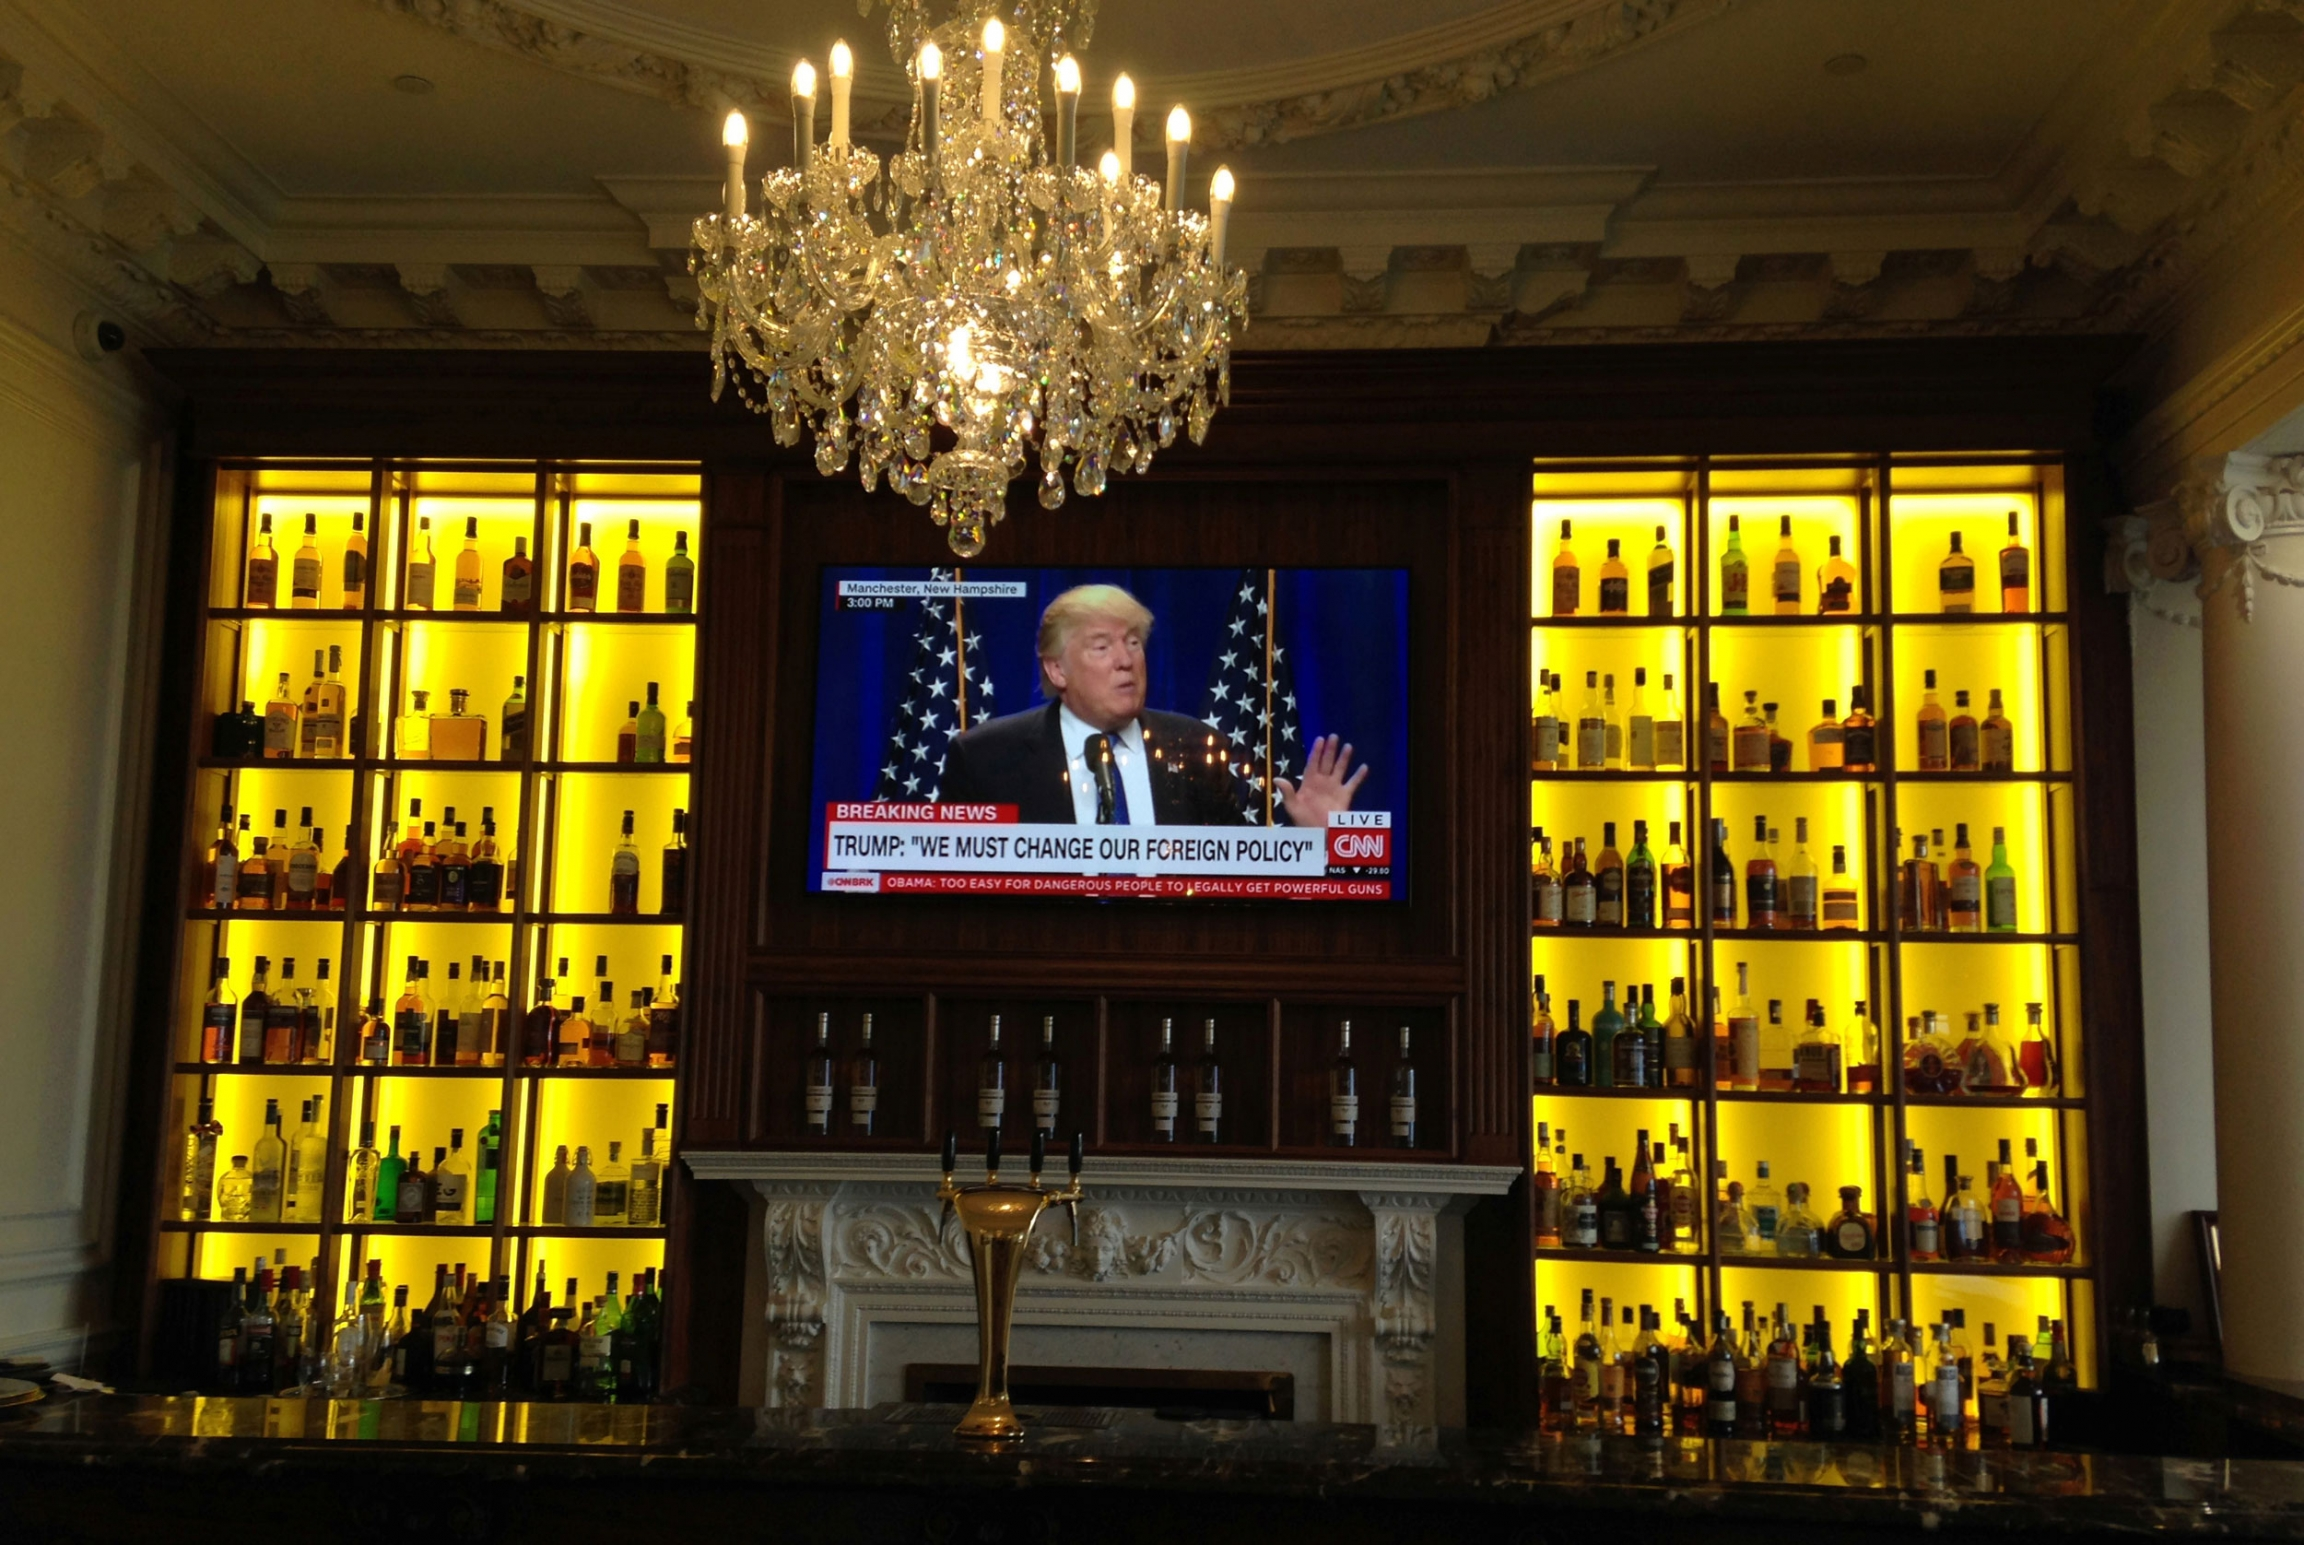 A TV screen on a bar shows US President Donald Trump